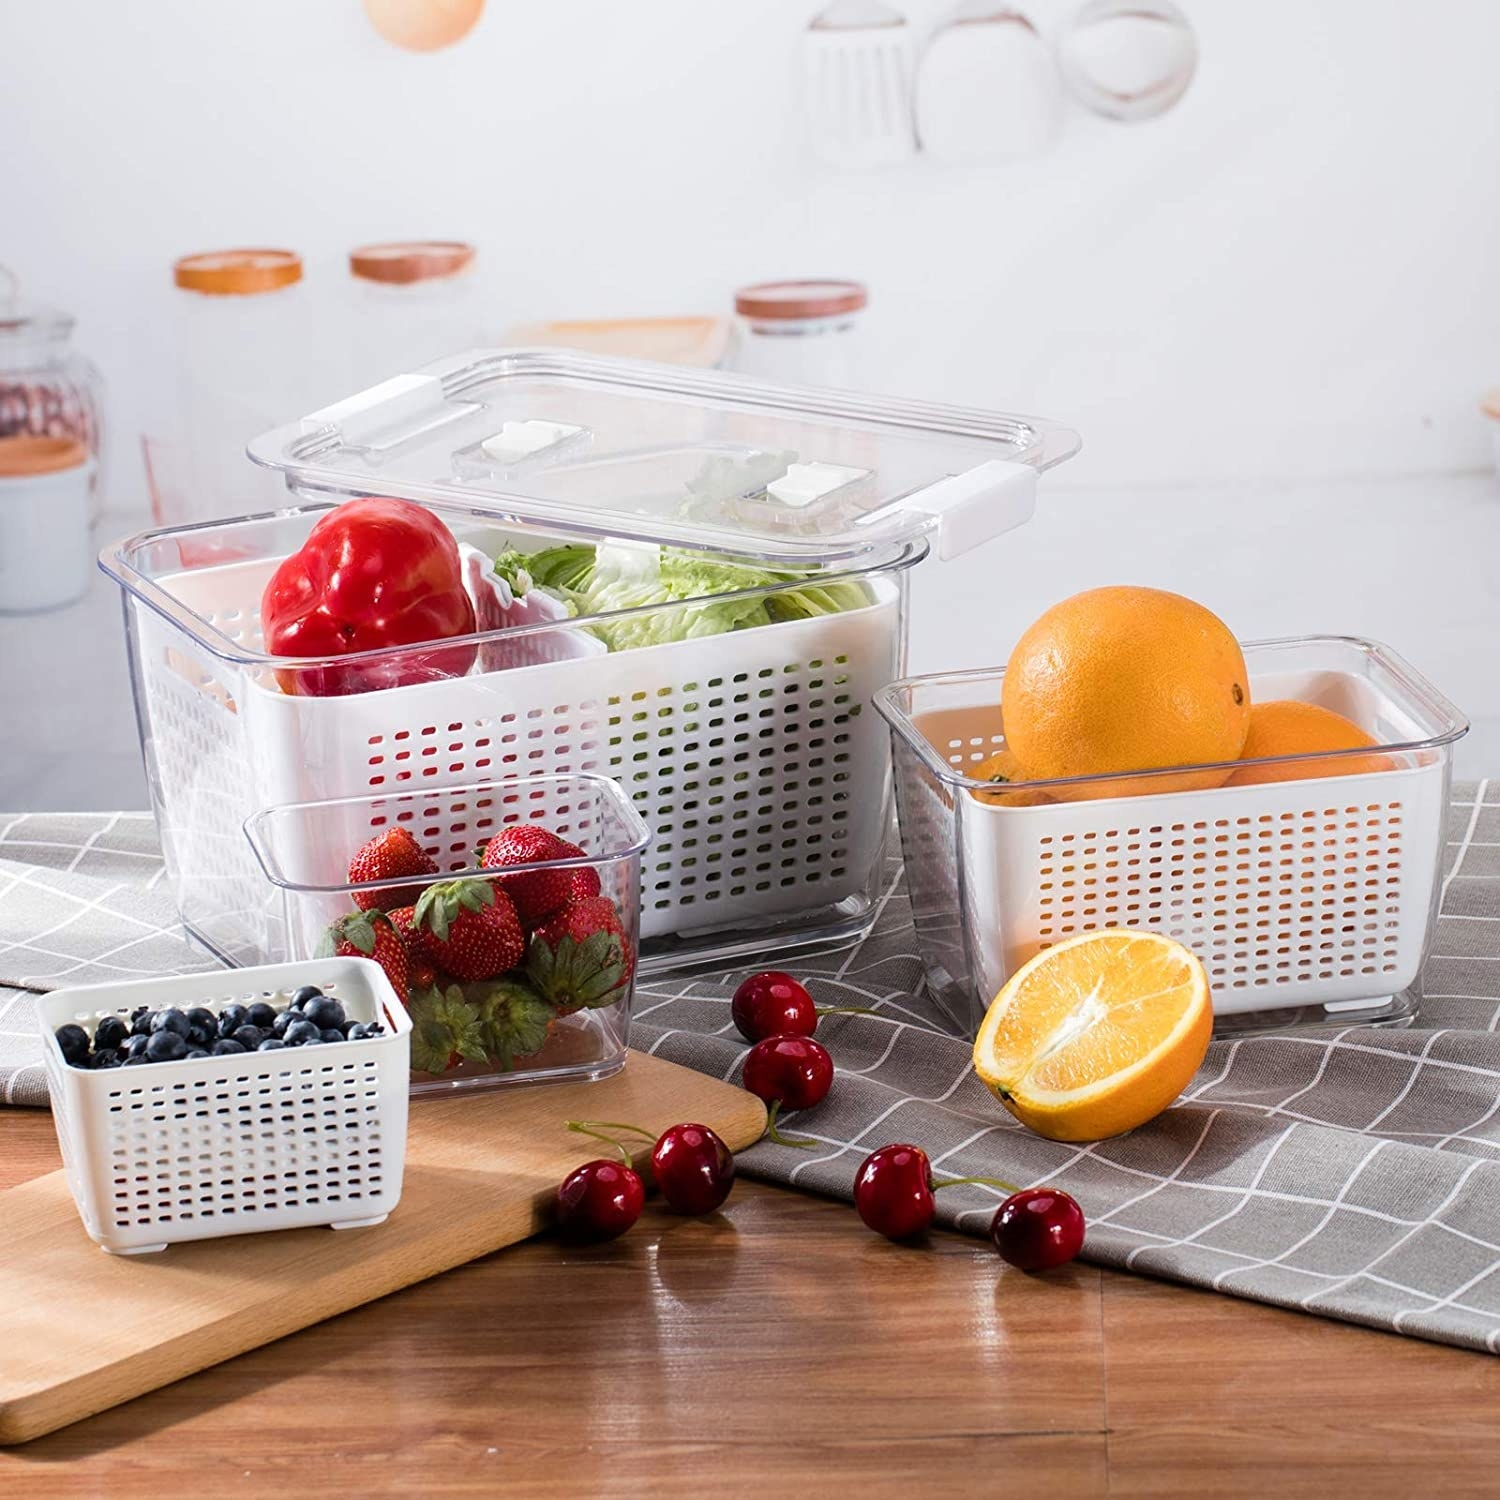 The three containers filled with fruits and veggies